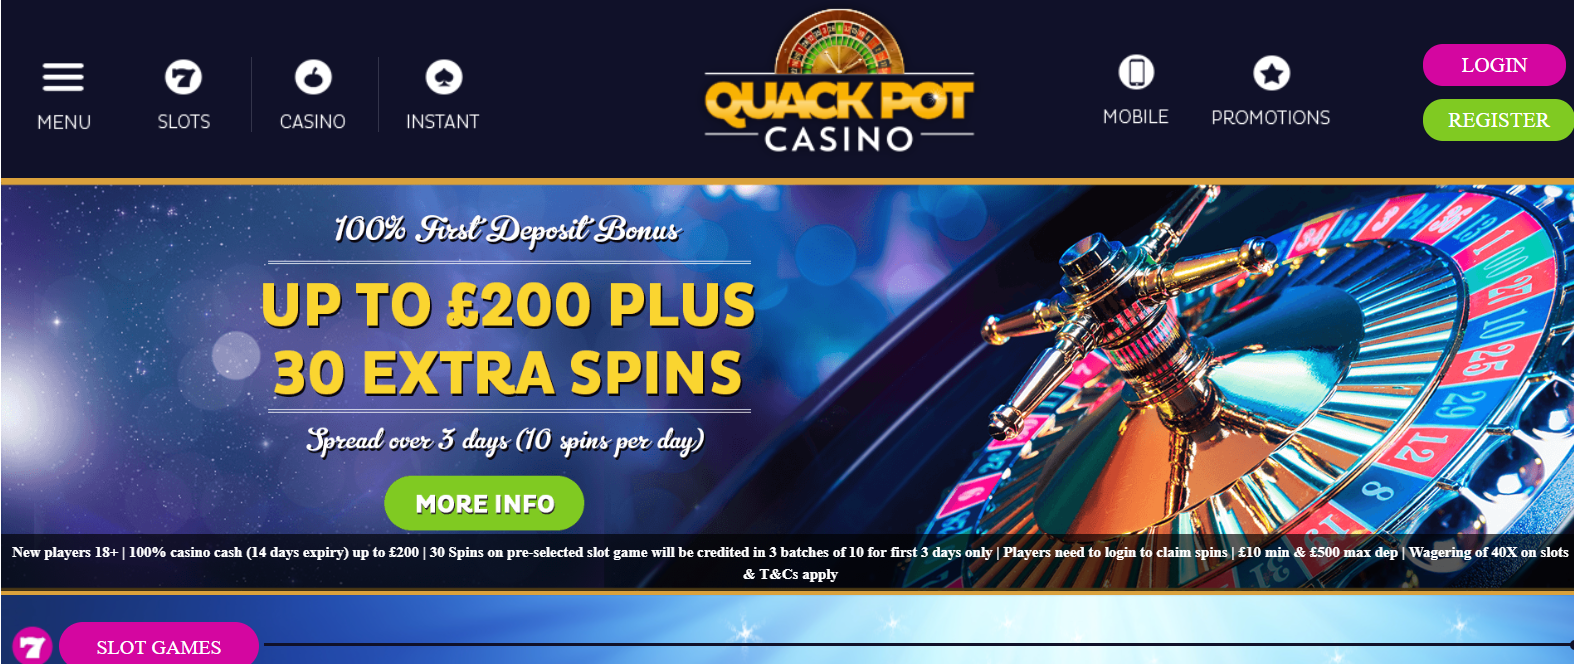 UK Bingo and Casino Games - Quackpot Casino